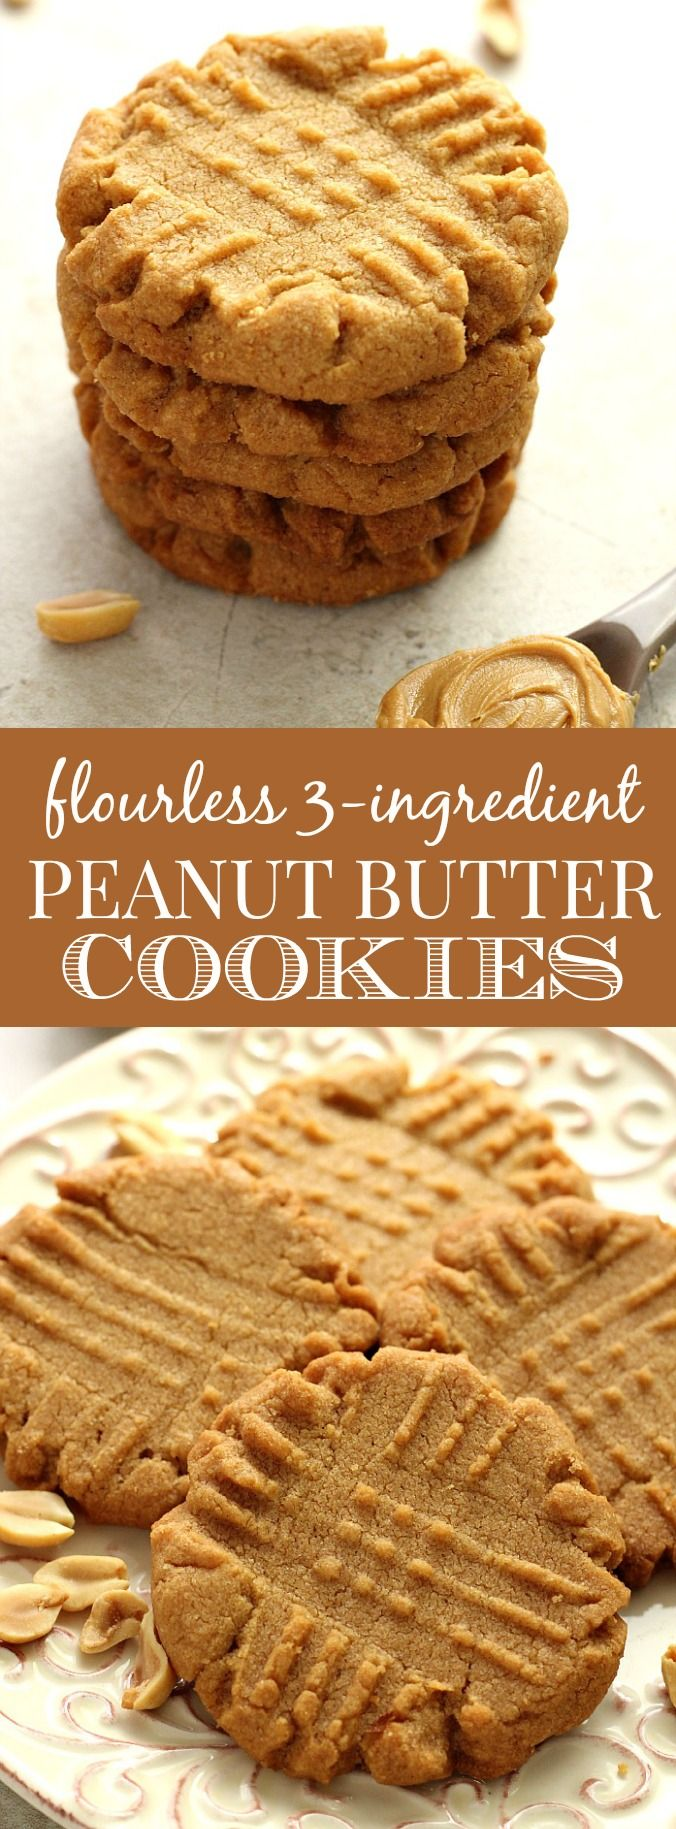 Flourless Peanut Butter Cookies – a classic cookie made from just 3 ingredients! Beloved by everyone!